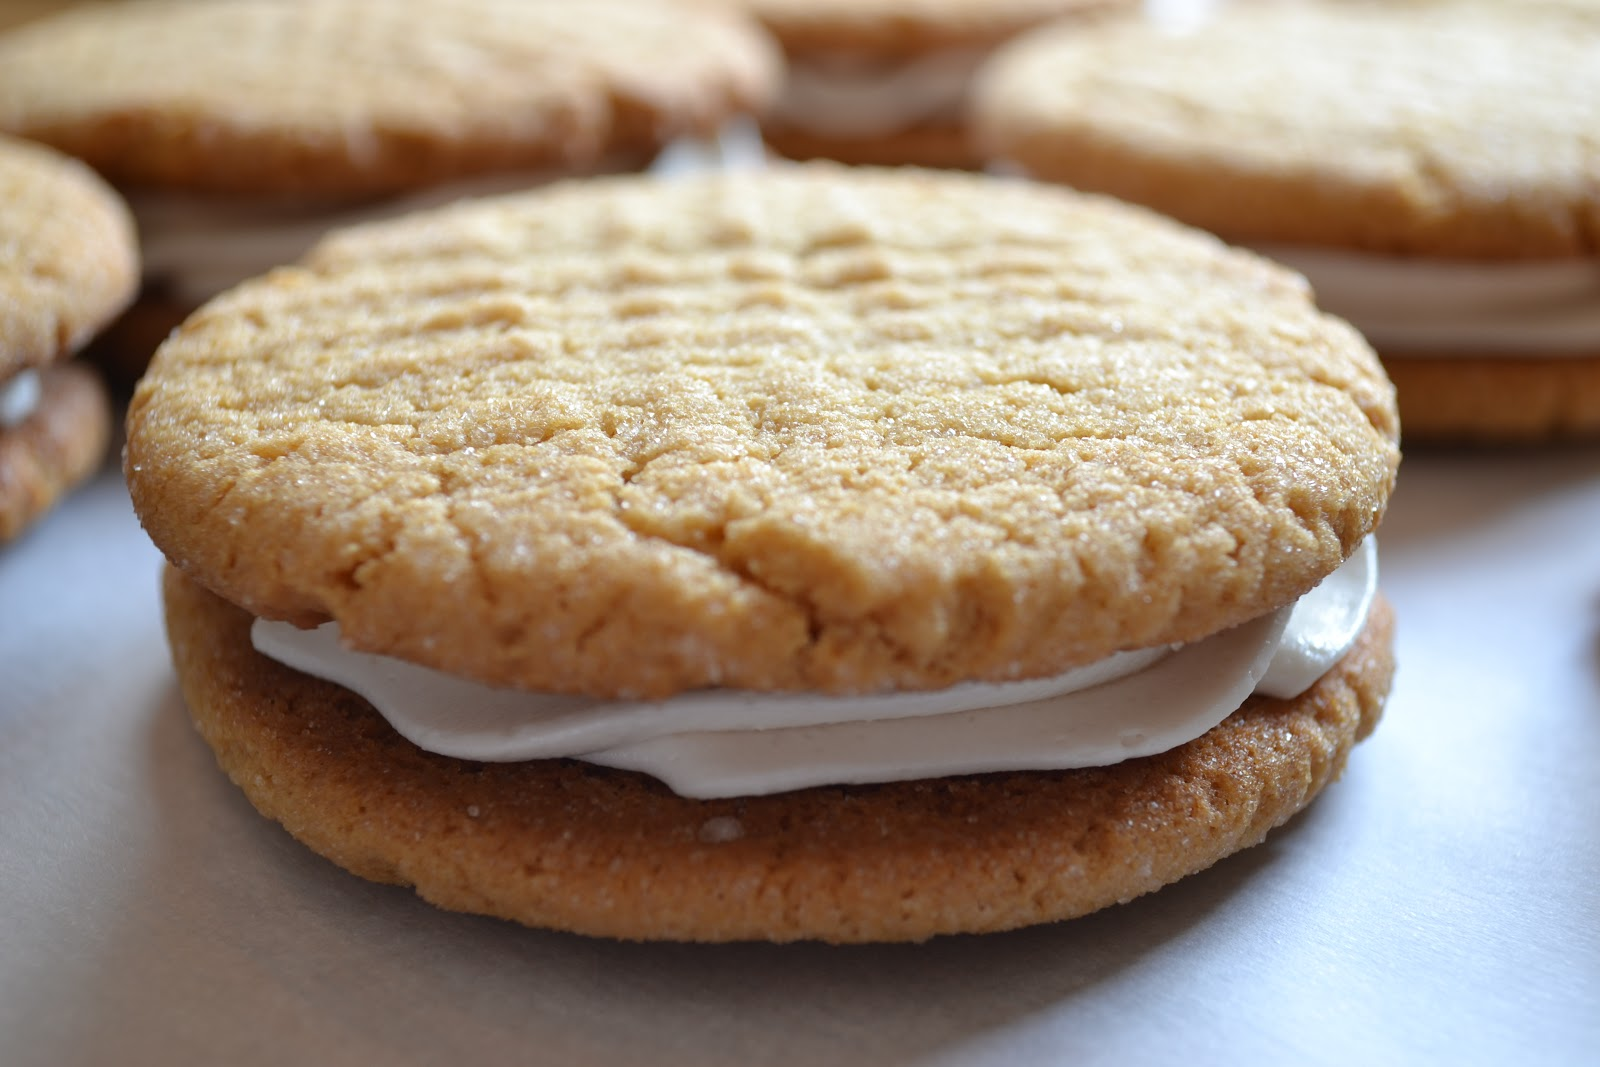 Made with honey, these are not your ordinary peanut butter cookies ...